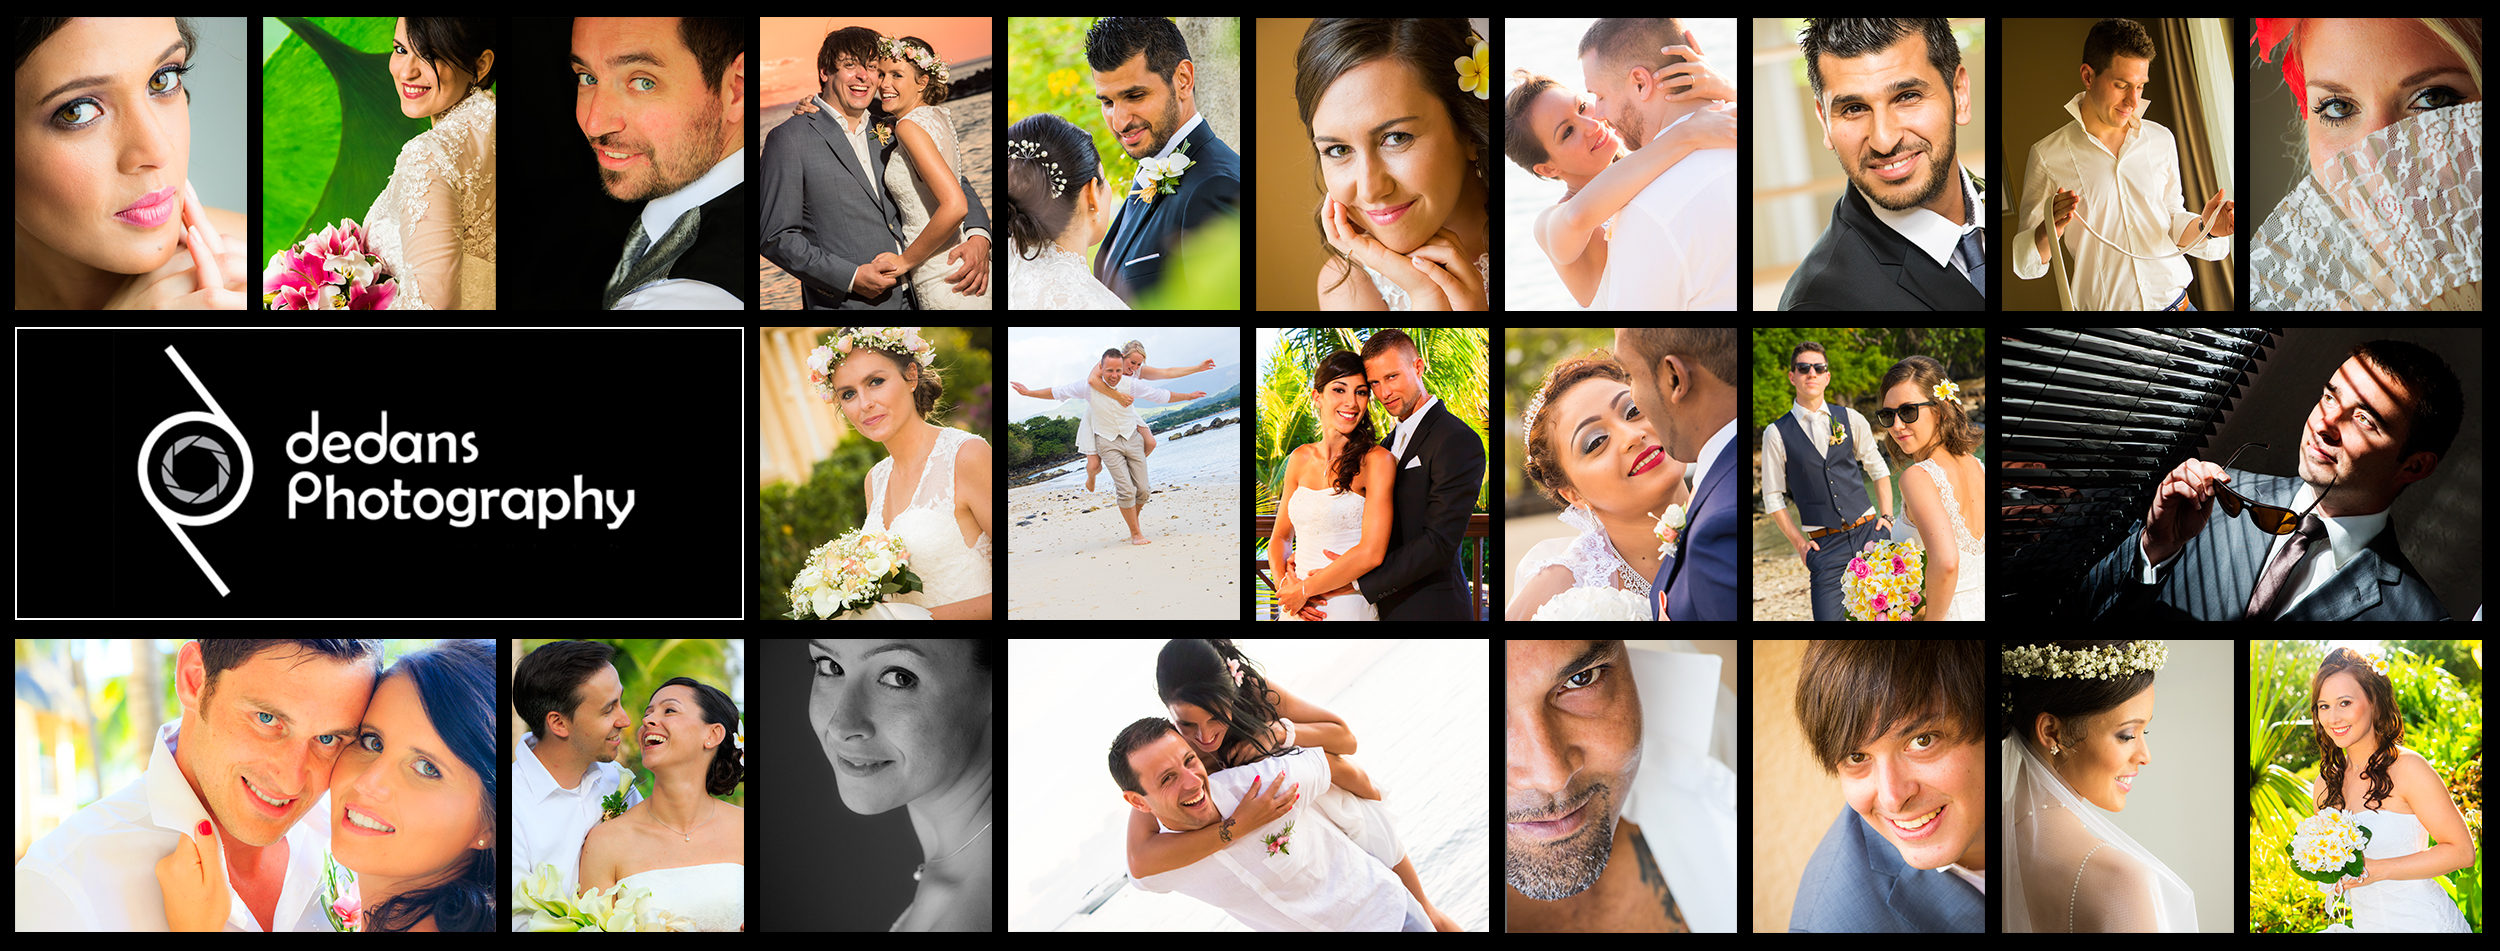 Dedans Photography, Wedding photography agency based in Mauritius